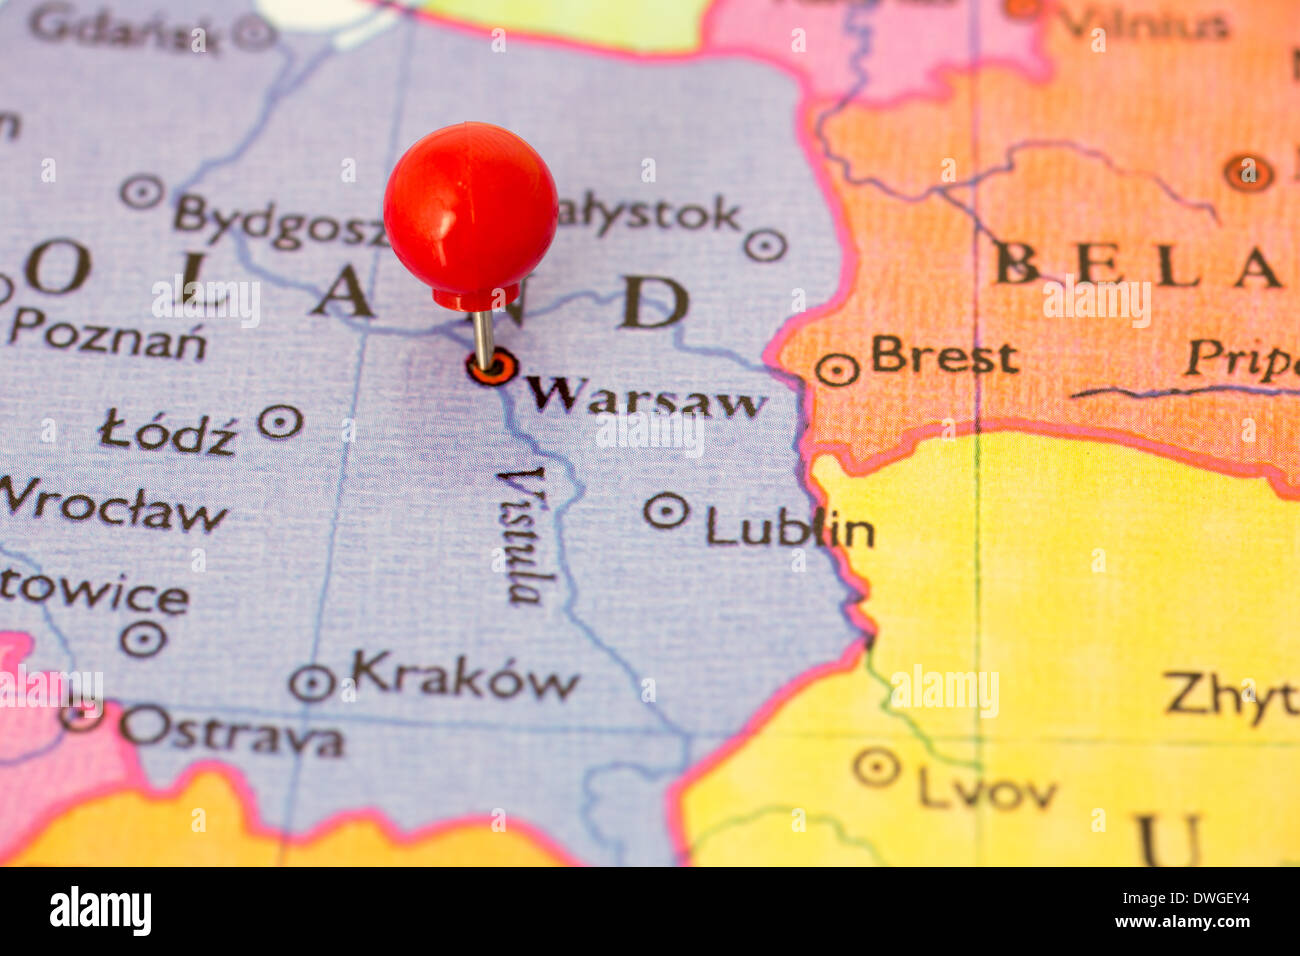 Round red thumb tack pinched through city of Warsaw on Poland map ...